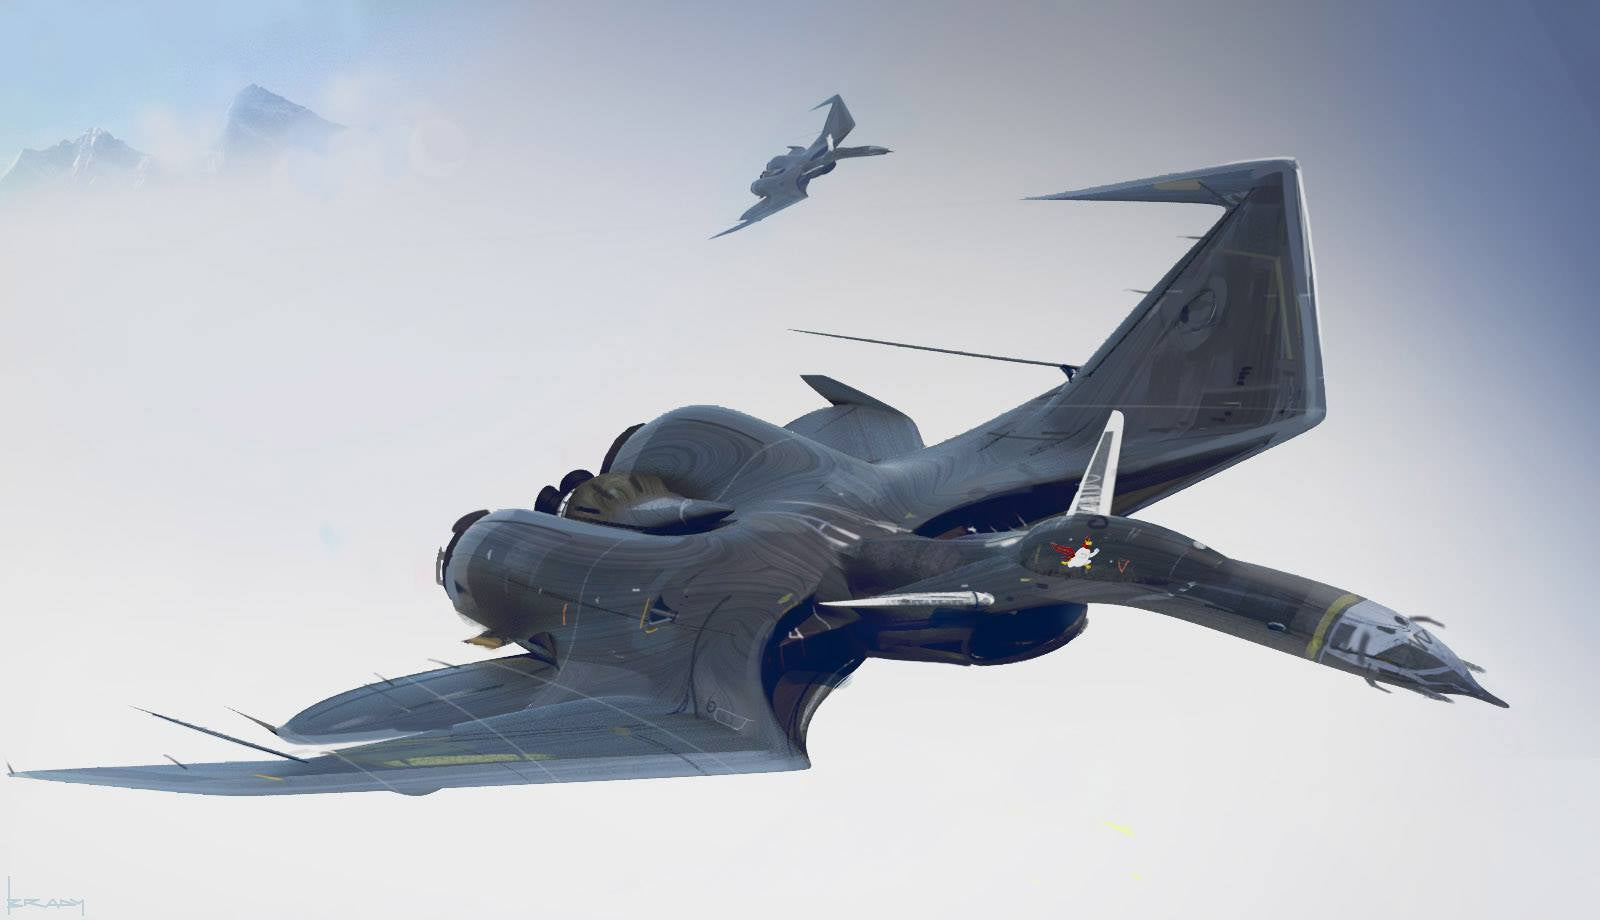 best helicopter gunship with These Pterodactyls  Bat Jets Are So Damn Cool on  furthermore Mi24e furthermore Russian Delta Iii Project 667bdr Kalmar besides Paf Attack Helicopter Looks More Like further These Pterodactyls  bat Jets Are So Damn Cool.